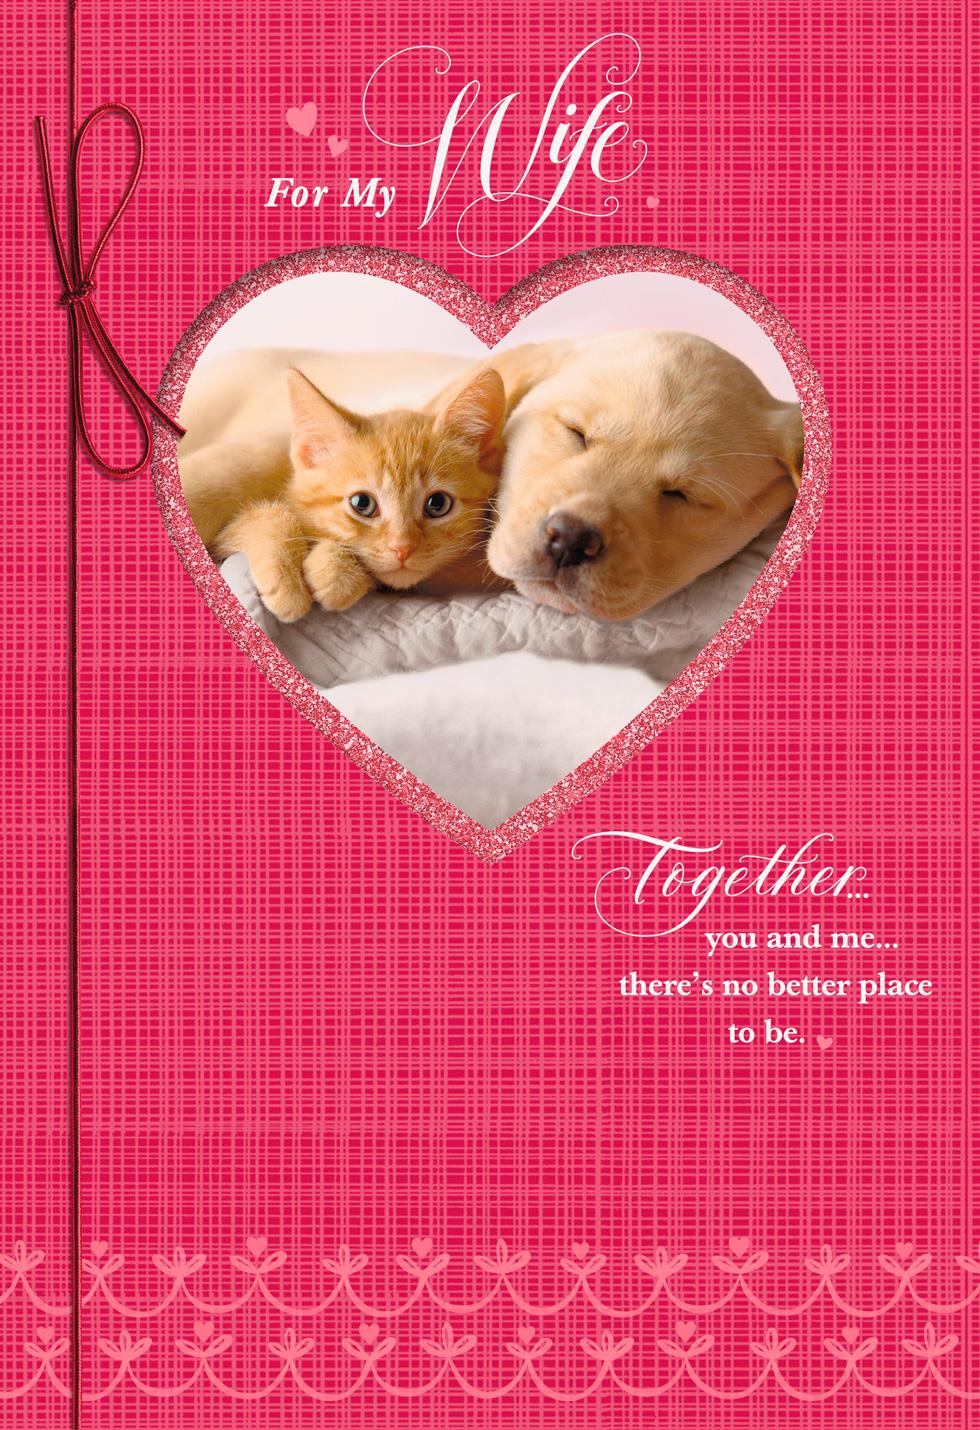 Dog And Cat Valentines Day Card For Wife   Cat Valentines Day